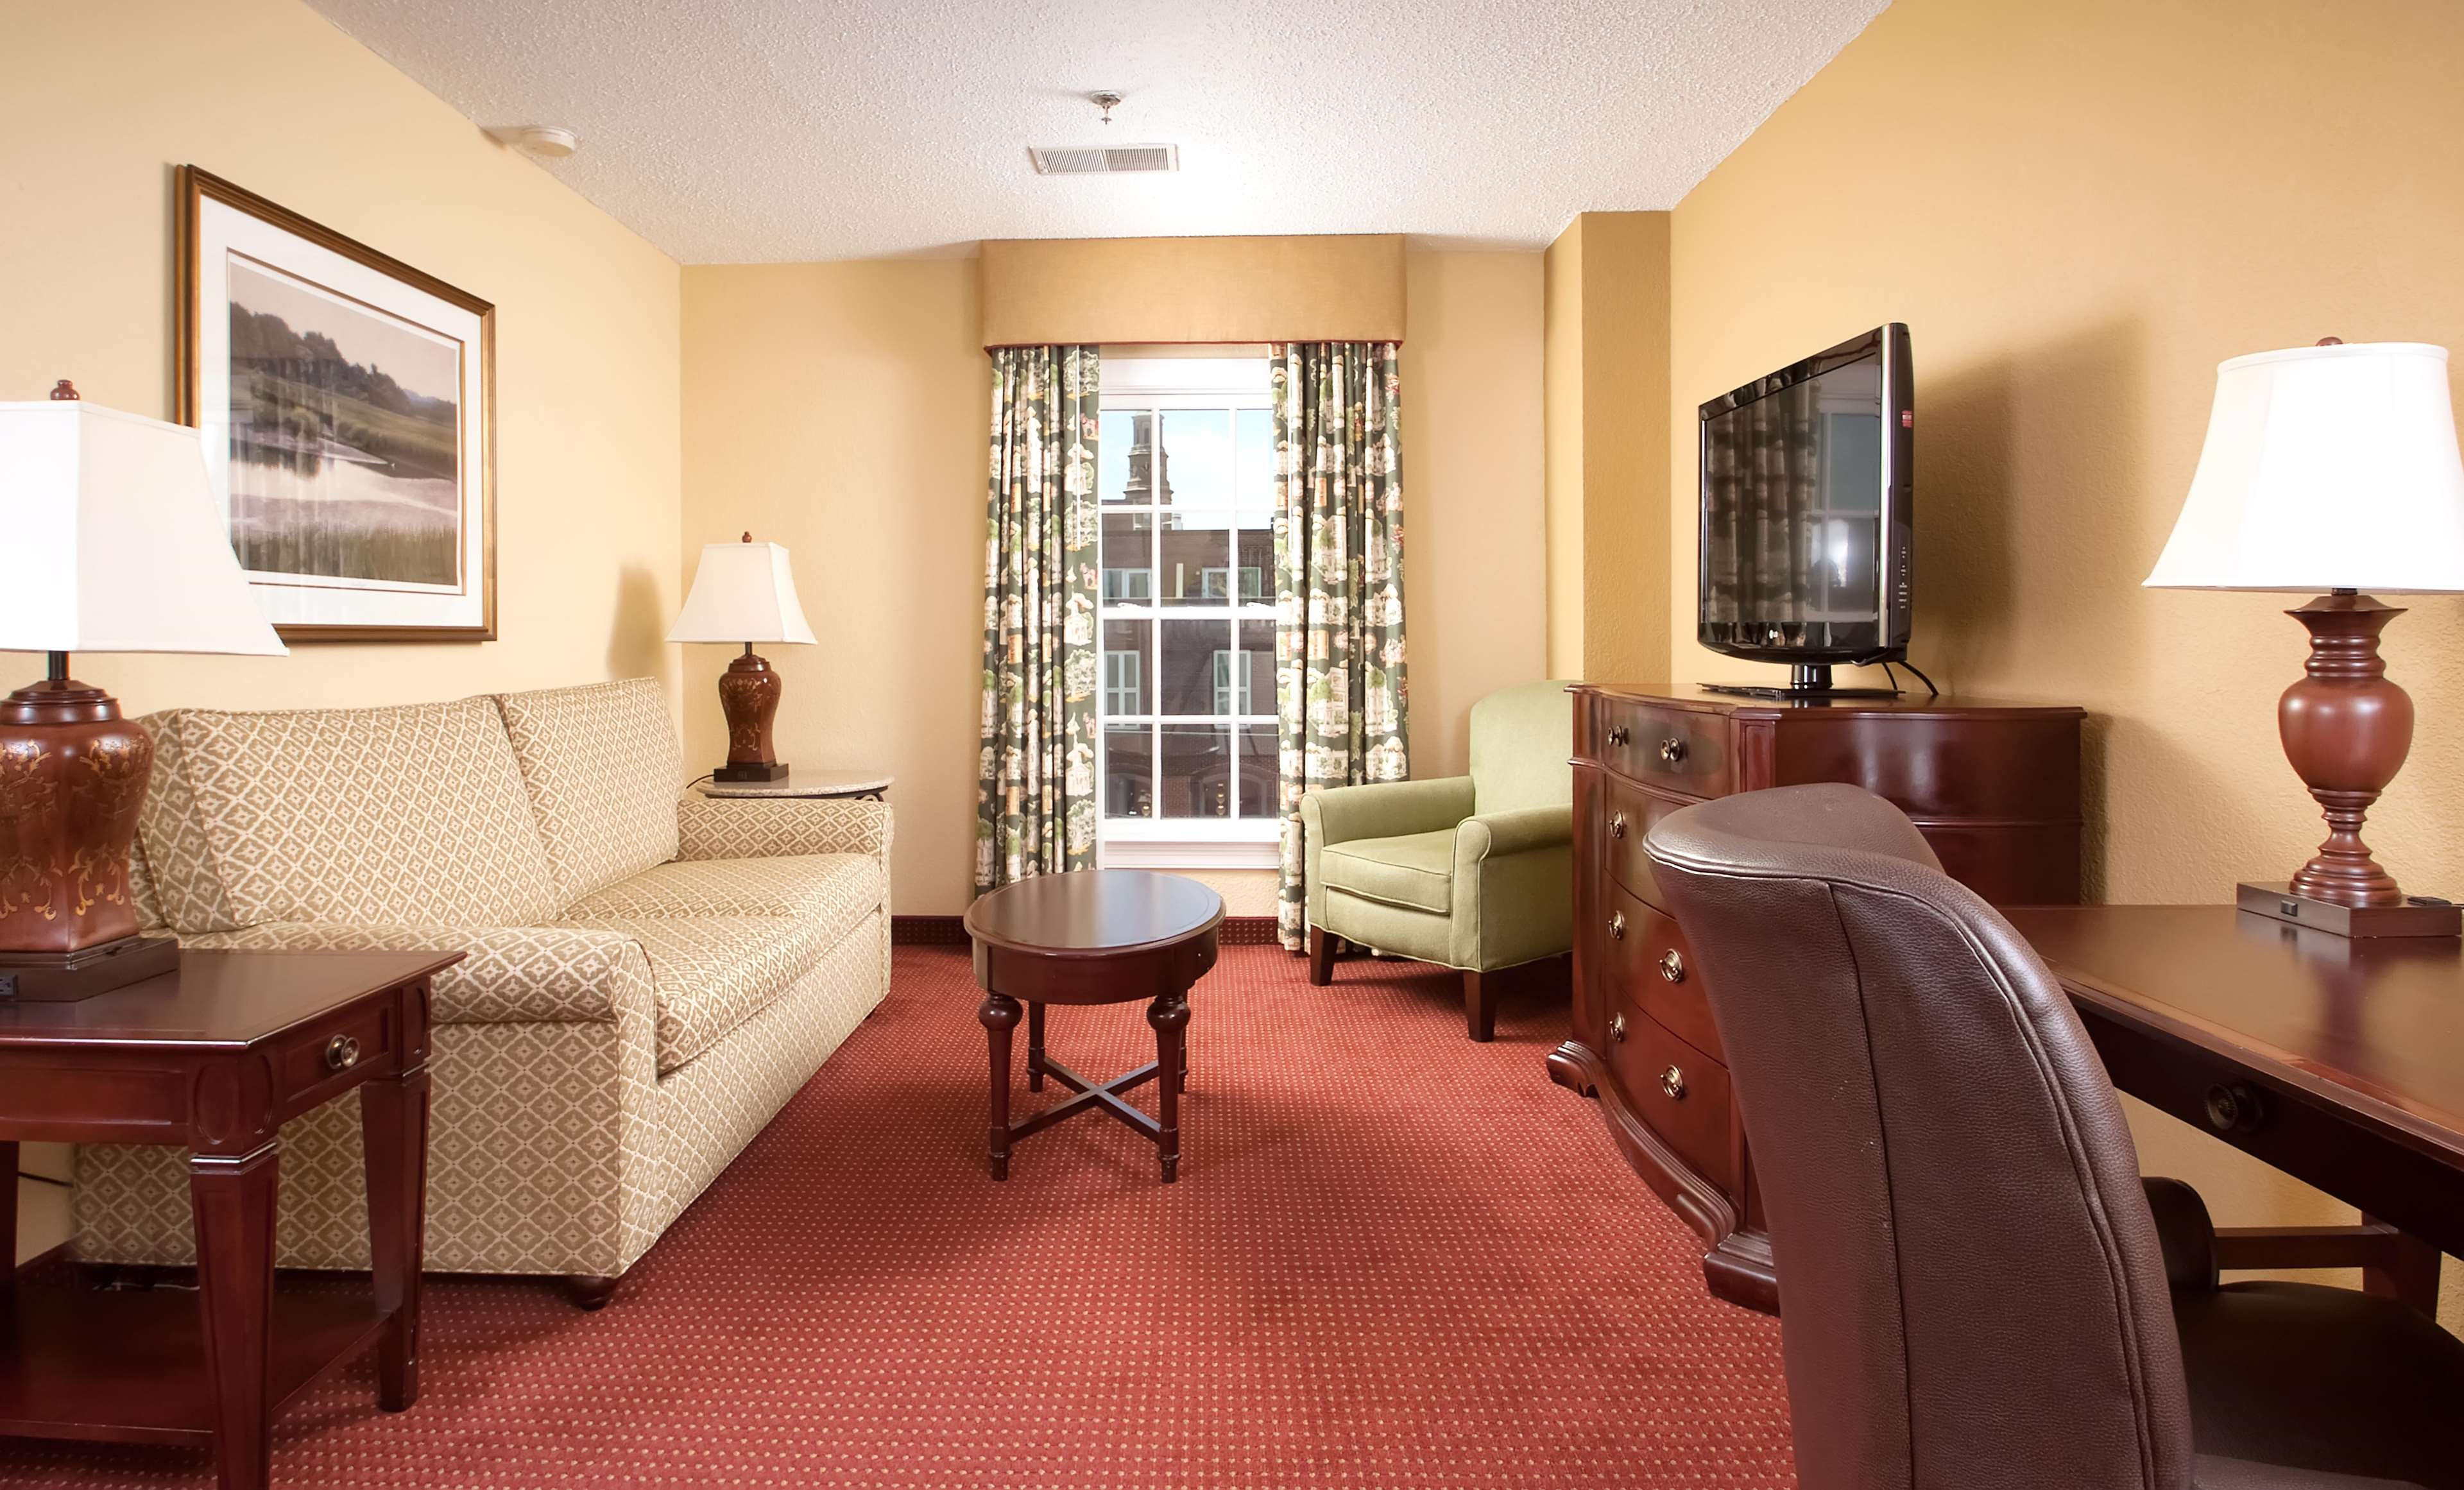 DoubleTree by Hilton Hotel & Suites Charleston - Historic District image 36